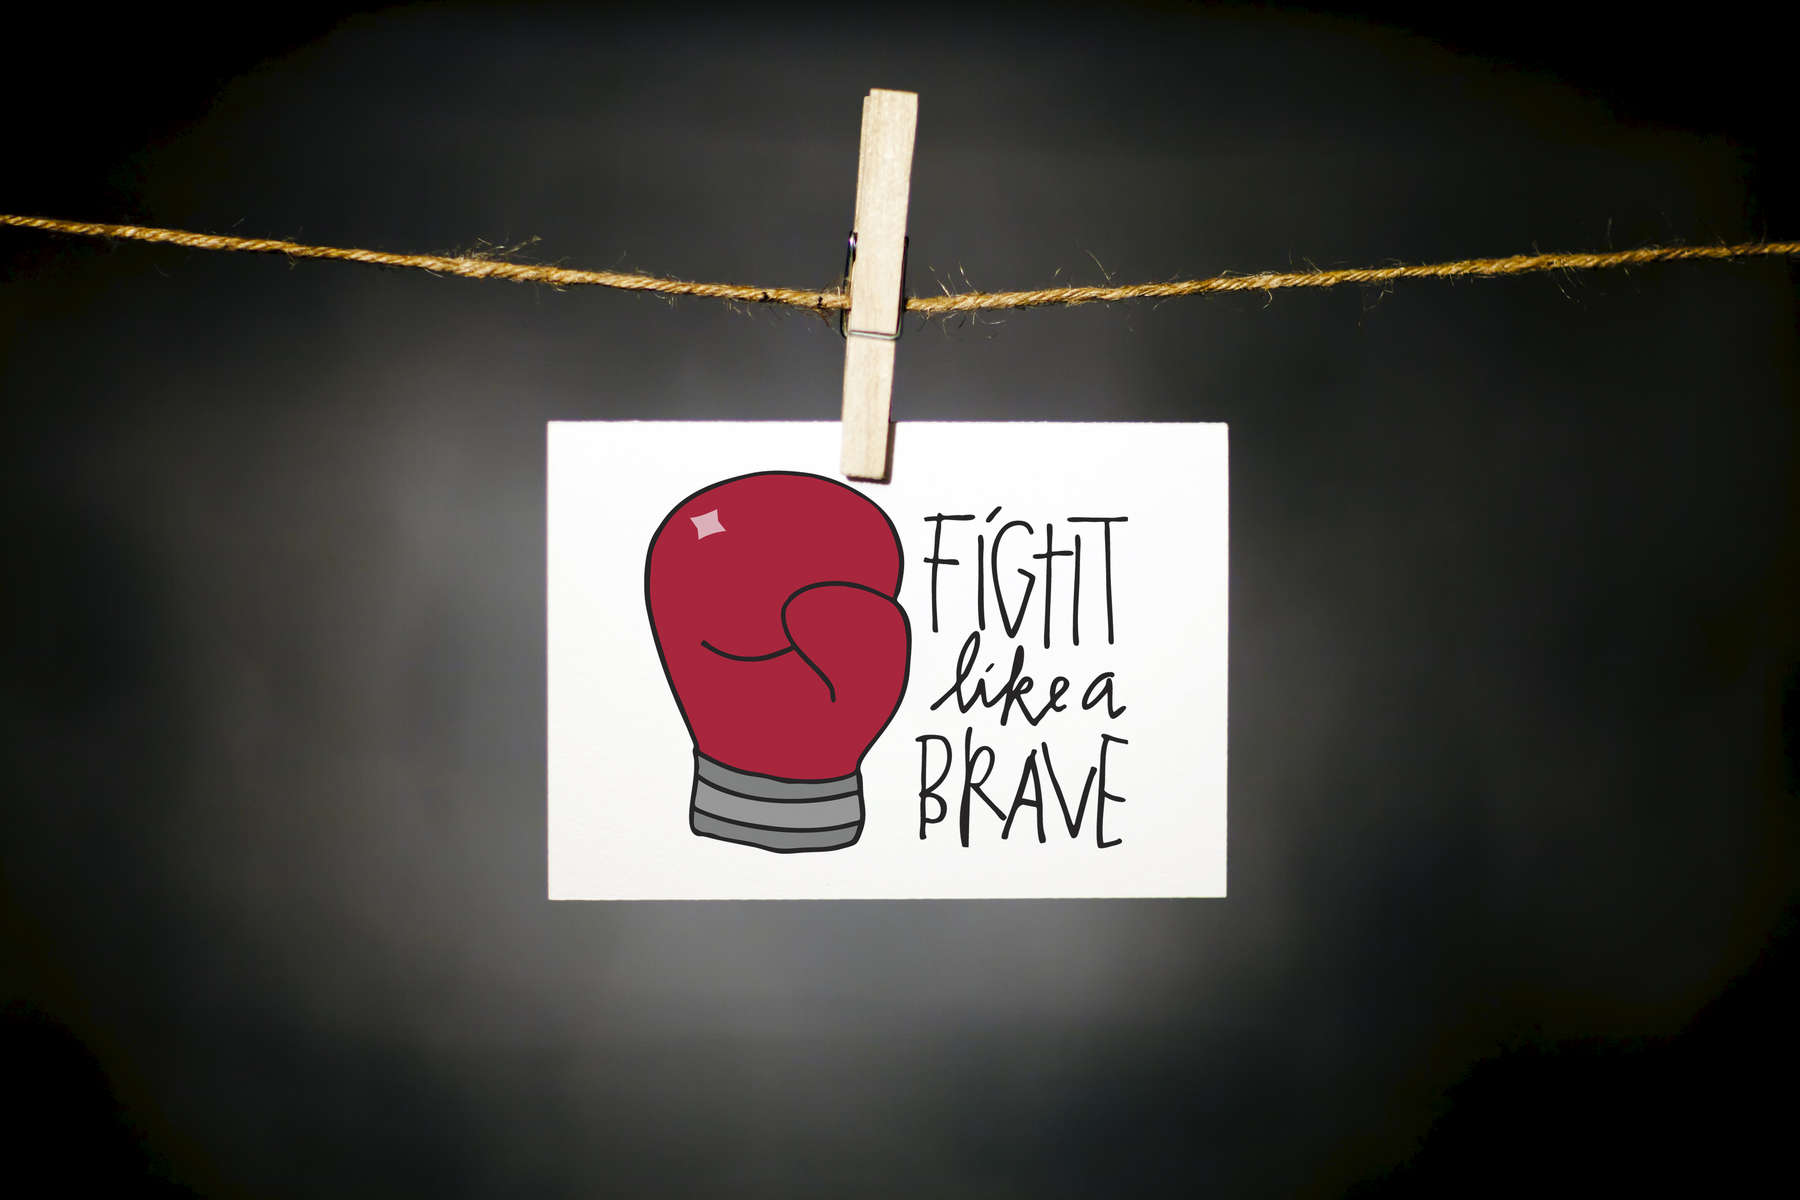 pURCHASE hEREhAND dRAWN eNCOURAGEMENT cARD // bE bRAVE // bE sTRONG // sURVIVOR cARD // bOXING gLOVESsOMETIMES LiFE cAN tHROW sOME hEAVY sH*T yOUR wAY. tHAT'S wHEN yOU nEED tO bE sTRONG, tAKE a sTAND, aND fIGHT LiKE yOU'VE nEVER fOUGHT bEFORE. fIGHT LiKE a bRAVE... dON'T bE aFRAID.eACH cARD iS pRINTED oN 100# rECYCLED + rESPONSIBLY sOURCED aRT pAPER. // eACH oNE mEASURES 3.5{quote} x 5{quote} aND iS aCCOMPANIED bY a cOORDINATING rECYCLED kRAFT pAPER 4 bAR eNVELOPE. // dOODLEgIRL cARDS aRE pROFESSIONALLY pRINTED + iNDIVIDUALLY pACKAGED iN cELLOPHANE sLEEVES tO kEEP tHEM pRISTINE uNTIL yOU aRE rEADY tO sHARE tHEM wITH tHE wORLD.cRAFTED + pRINTED iN cOLORADO, uSA.